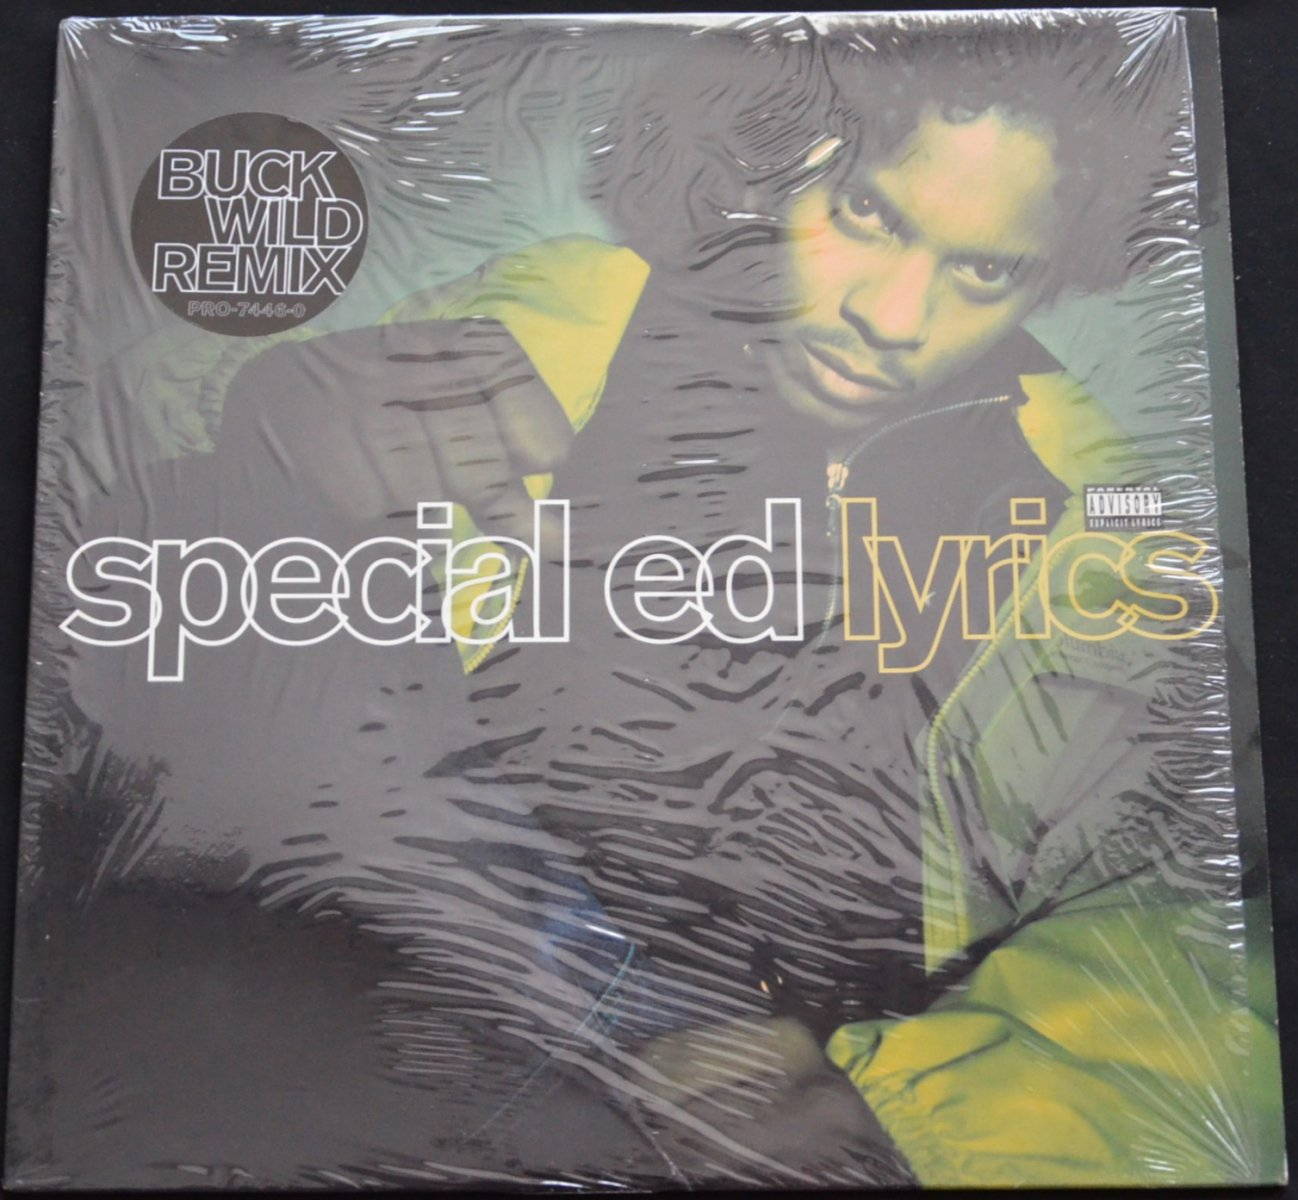 SPECIAL ED ‎/ LYRICS (BUCKWILD REMIX) (12